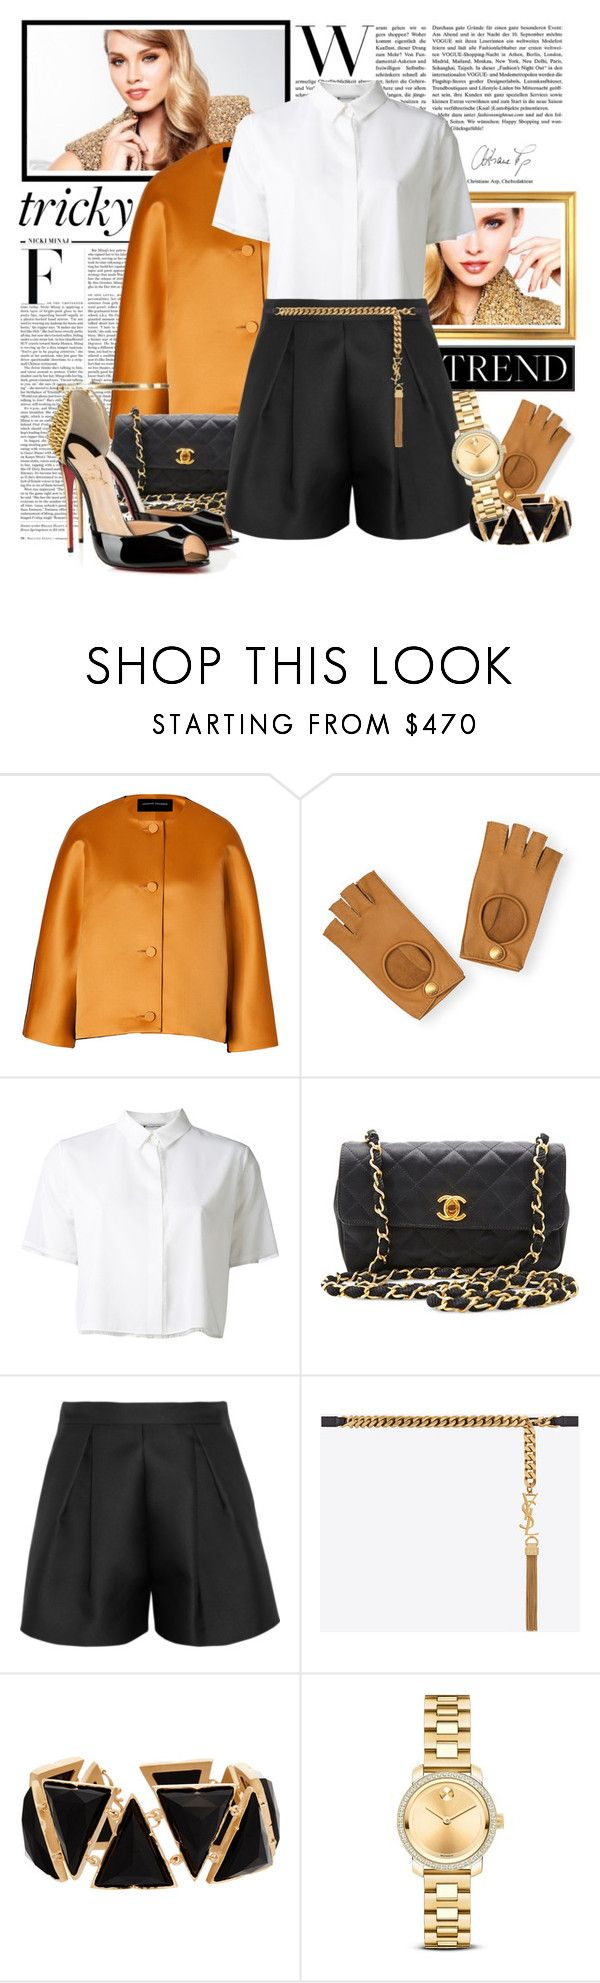 """""""Tricky Trend: Suit With Shorts"""" by fashionicious ❤ liked on Polyvore featuring Nicki Minaj, Jonathan Saunders, Hermès, T By Alexander Wang, Chanel, Giambattista Valli, Yves Saint Laurent, Christian Louboutin, Irene Neuwirth and Movado"""